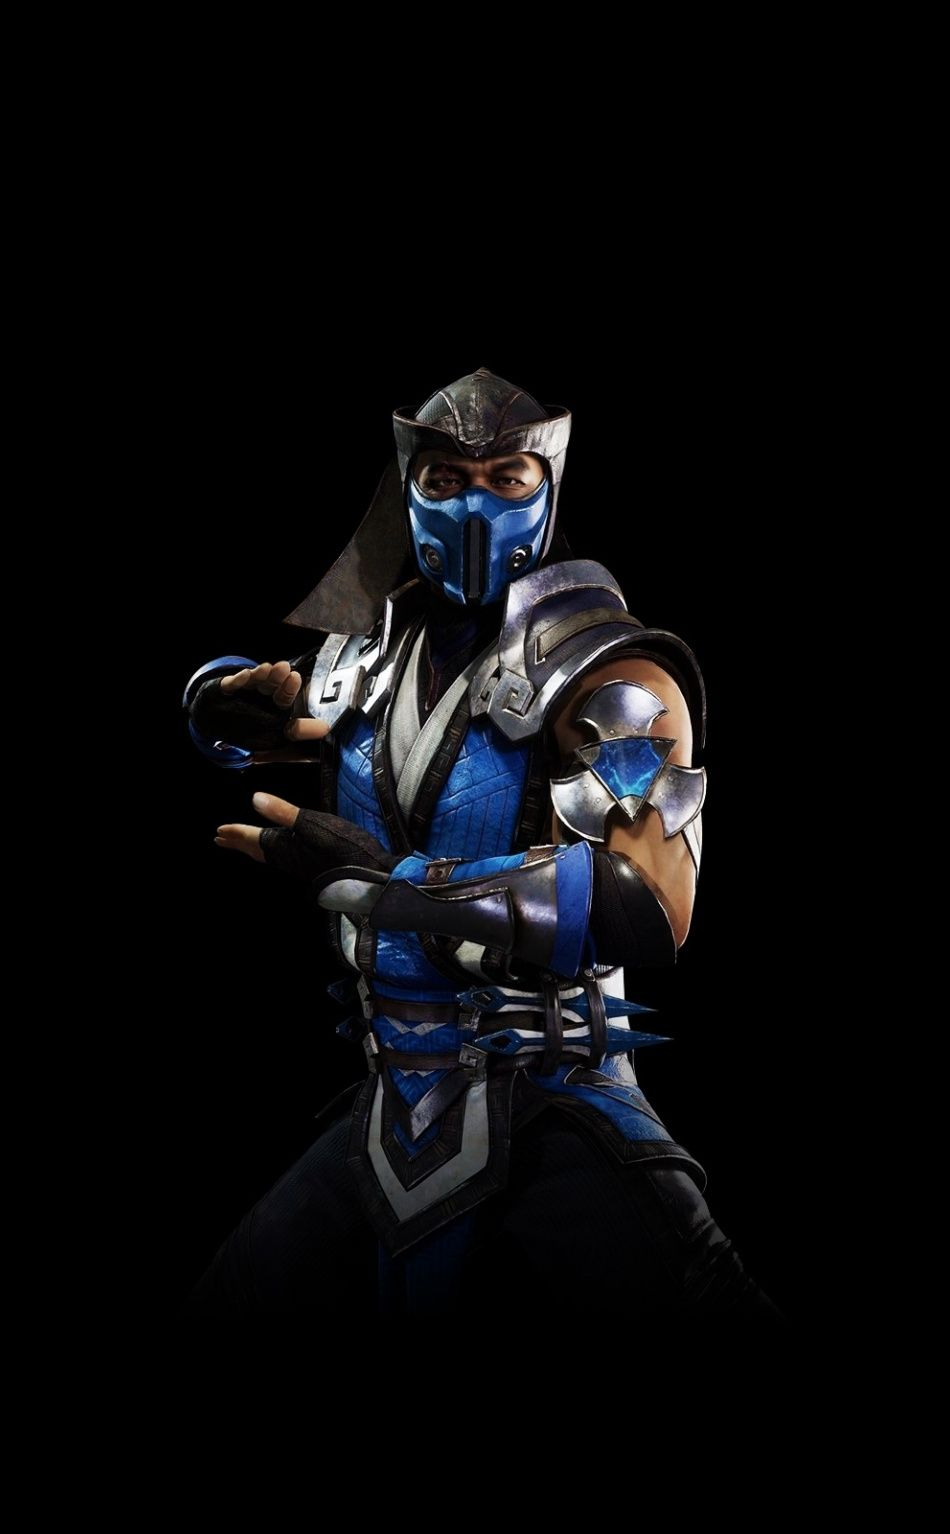 Sub Zero Warrior Mortal Kombat 11 Video Game Minimal 950x1534